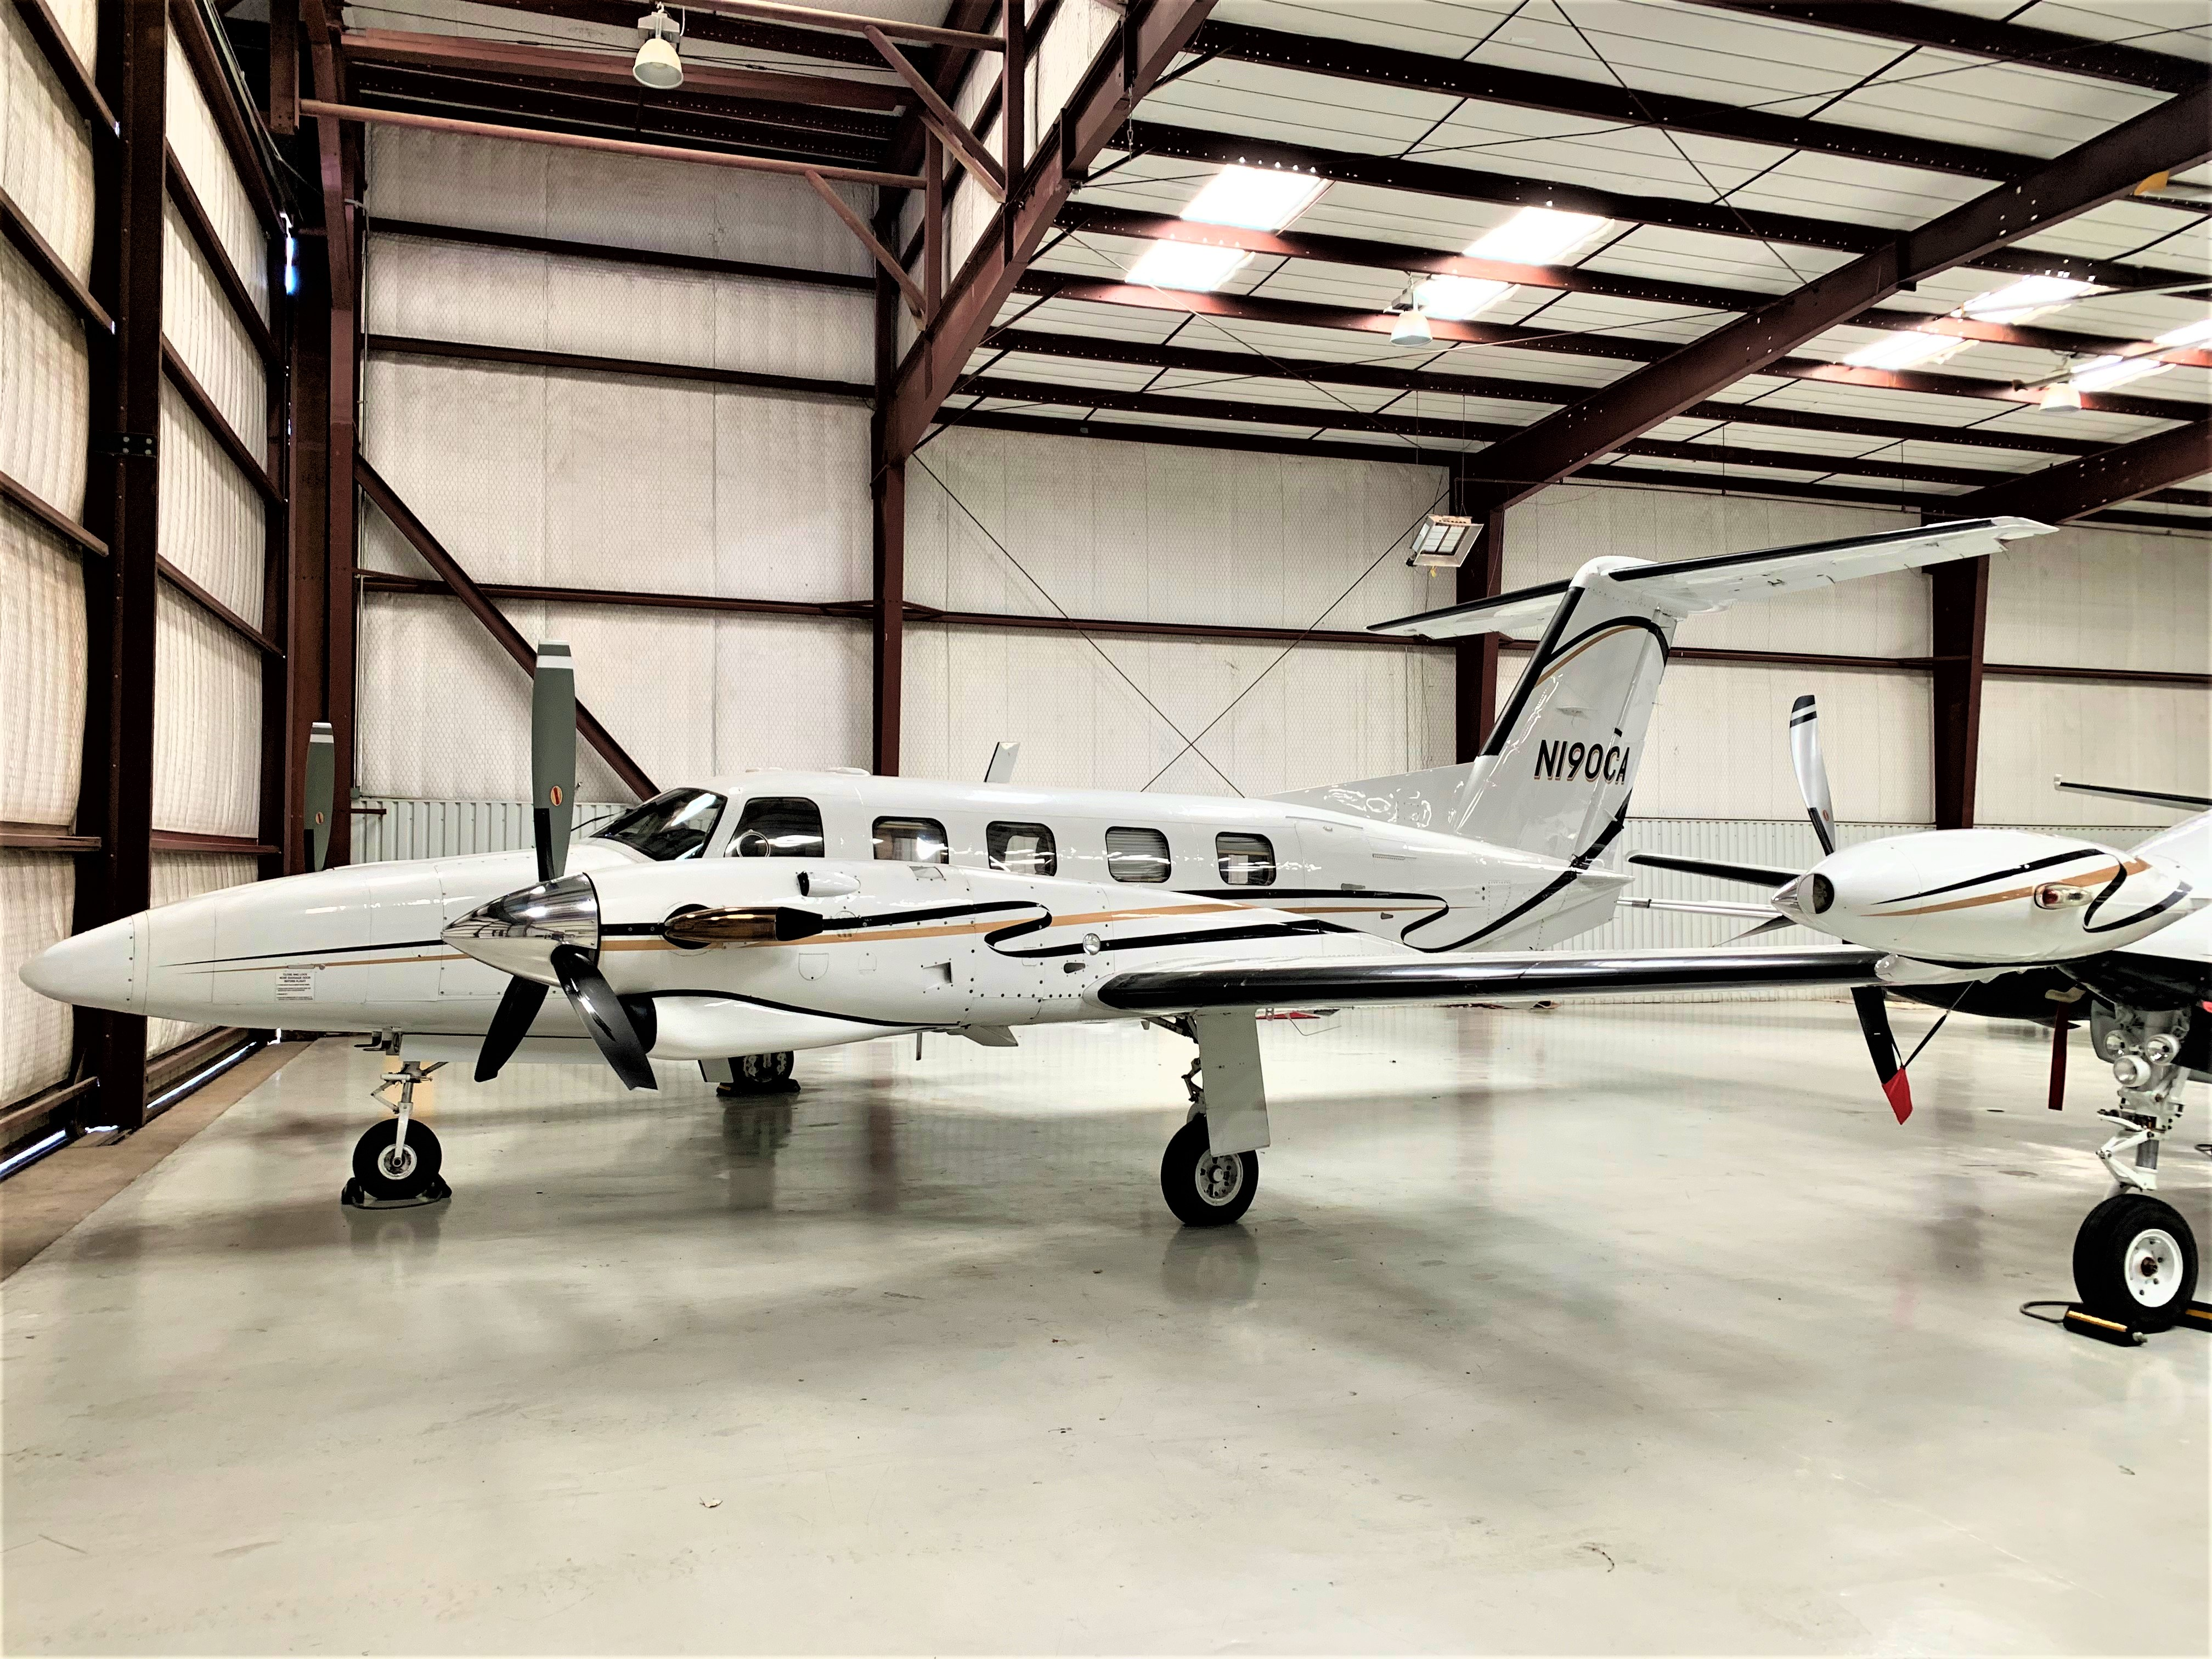 Aircraft Listing - Cheyenne III PA-42-720 listed for sale